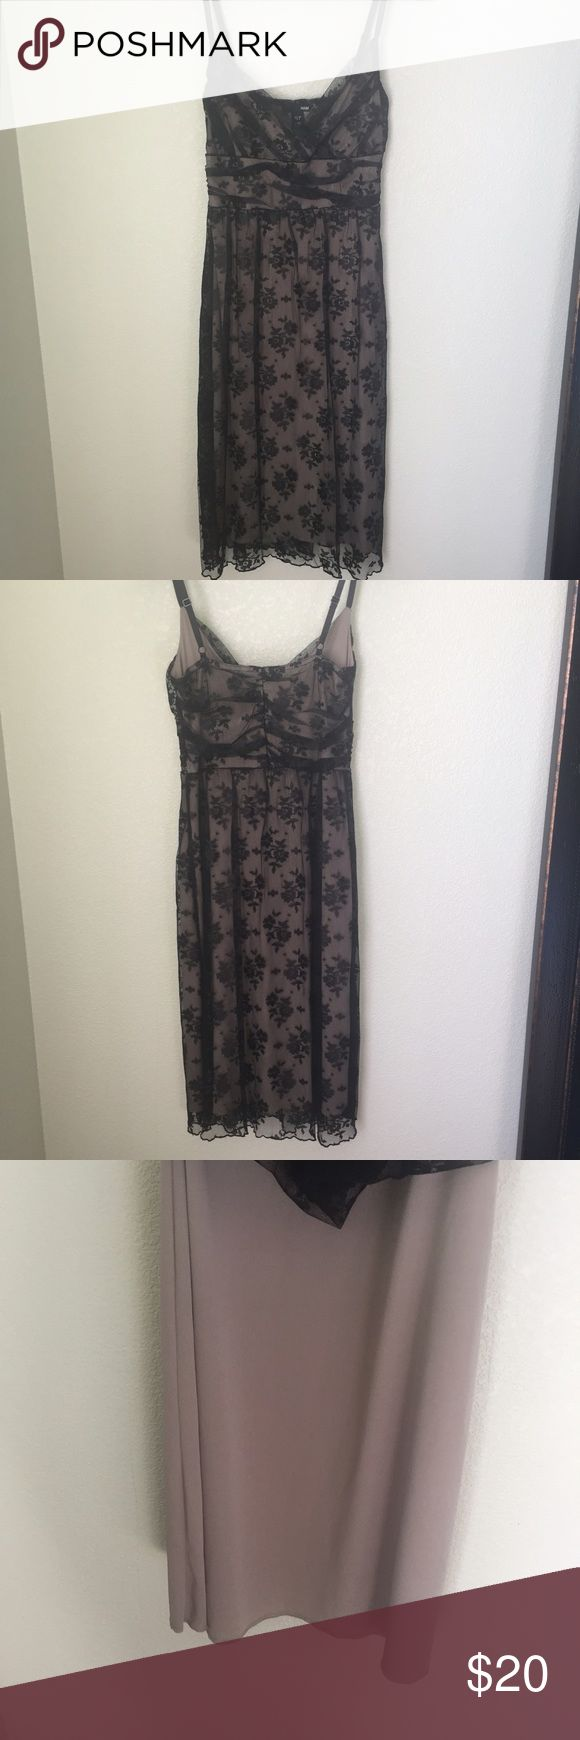 🆕H&M lace dress never worn floral patterned lace dress with adjustable straps and tan lining underneath. H&M Dresses Midi